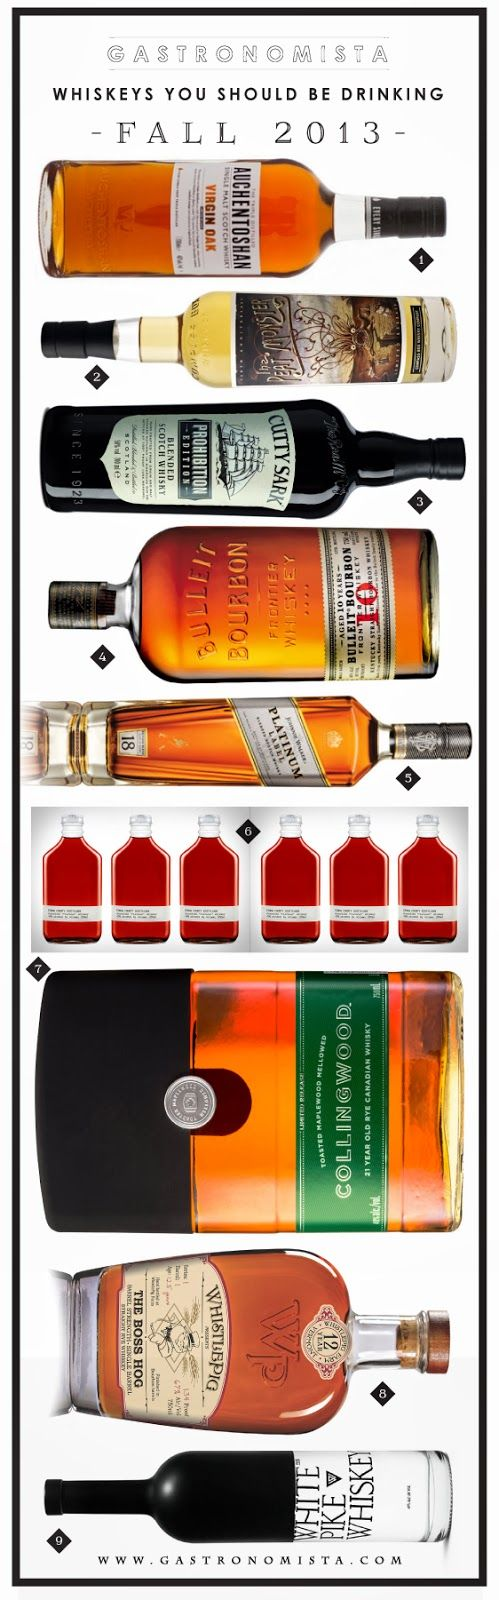 Gastronomista Whiskey You Should Be Drinking Fall 2013 Whiskey And You Cigars And Whiskey Whiskey